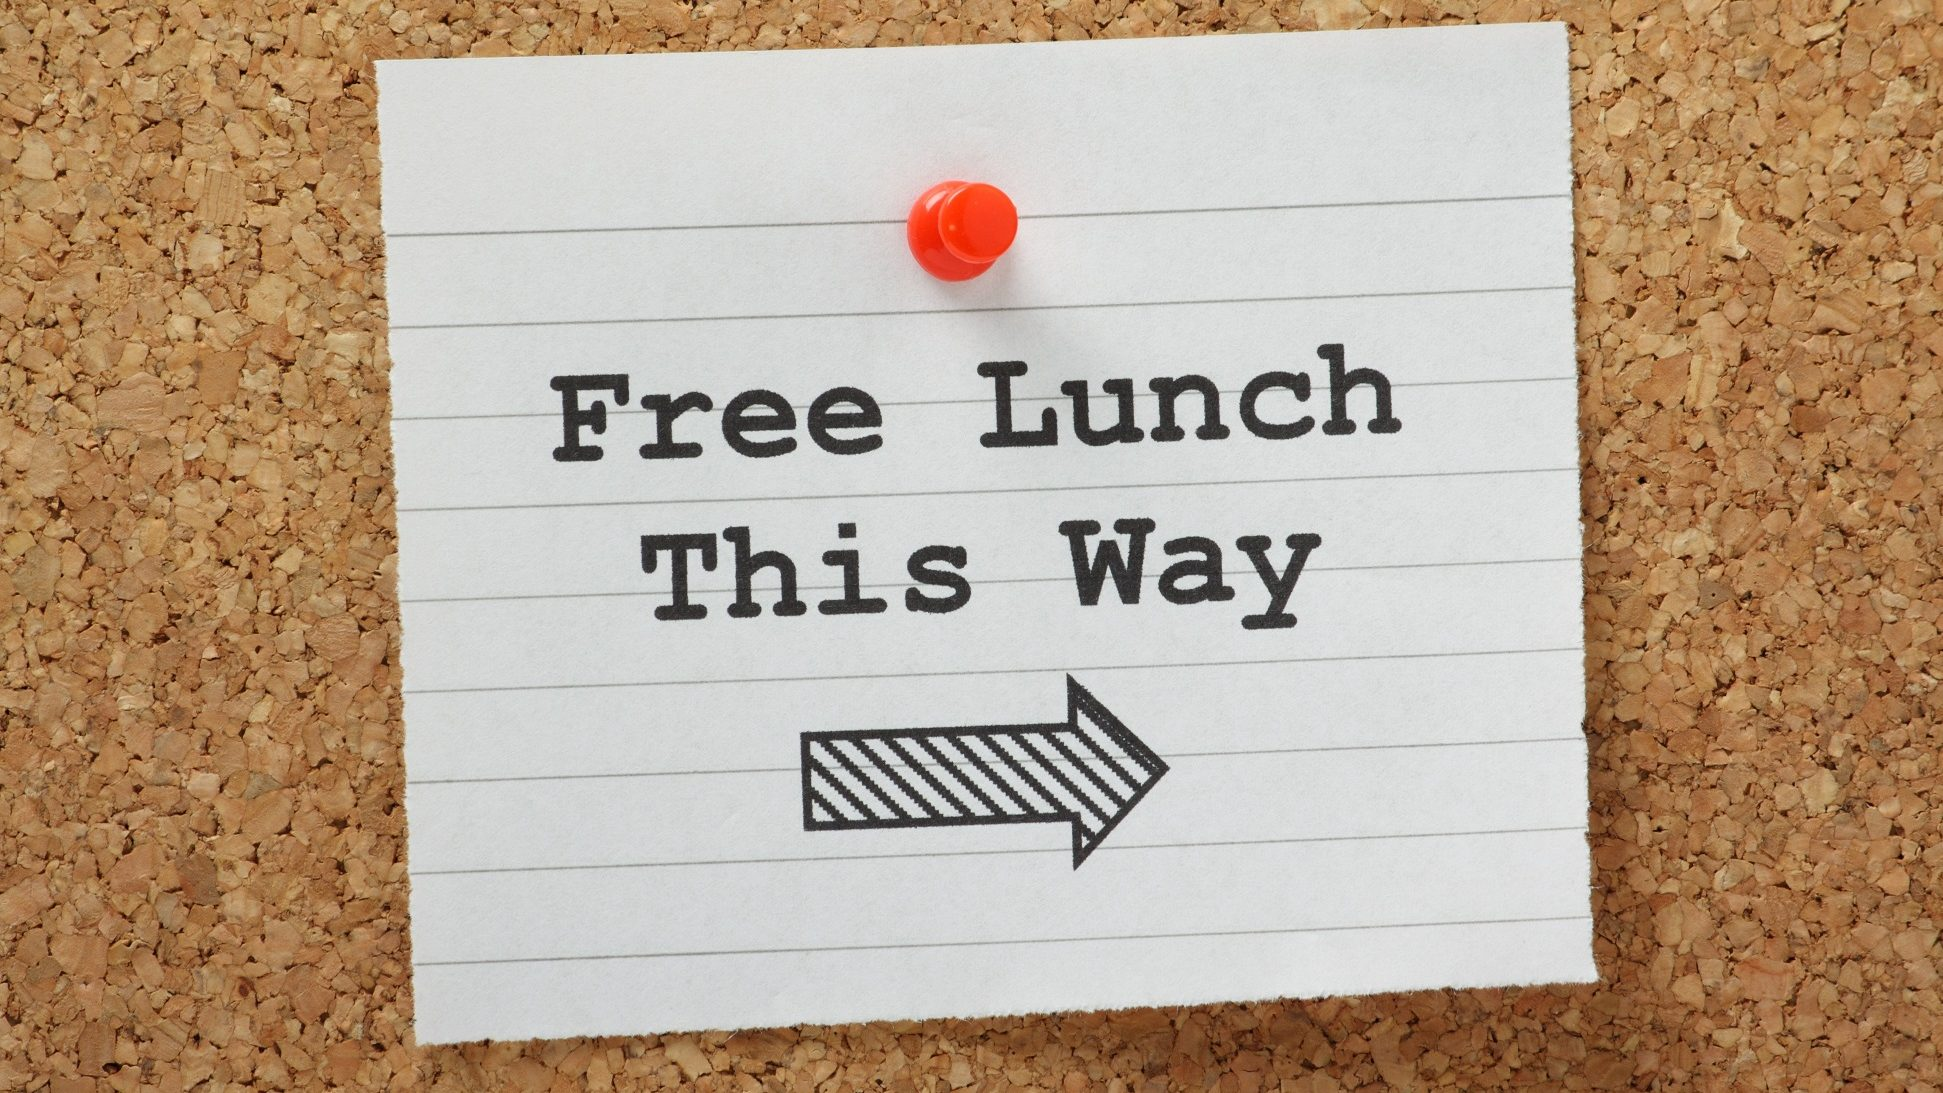 Sign for free lunch